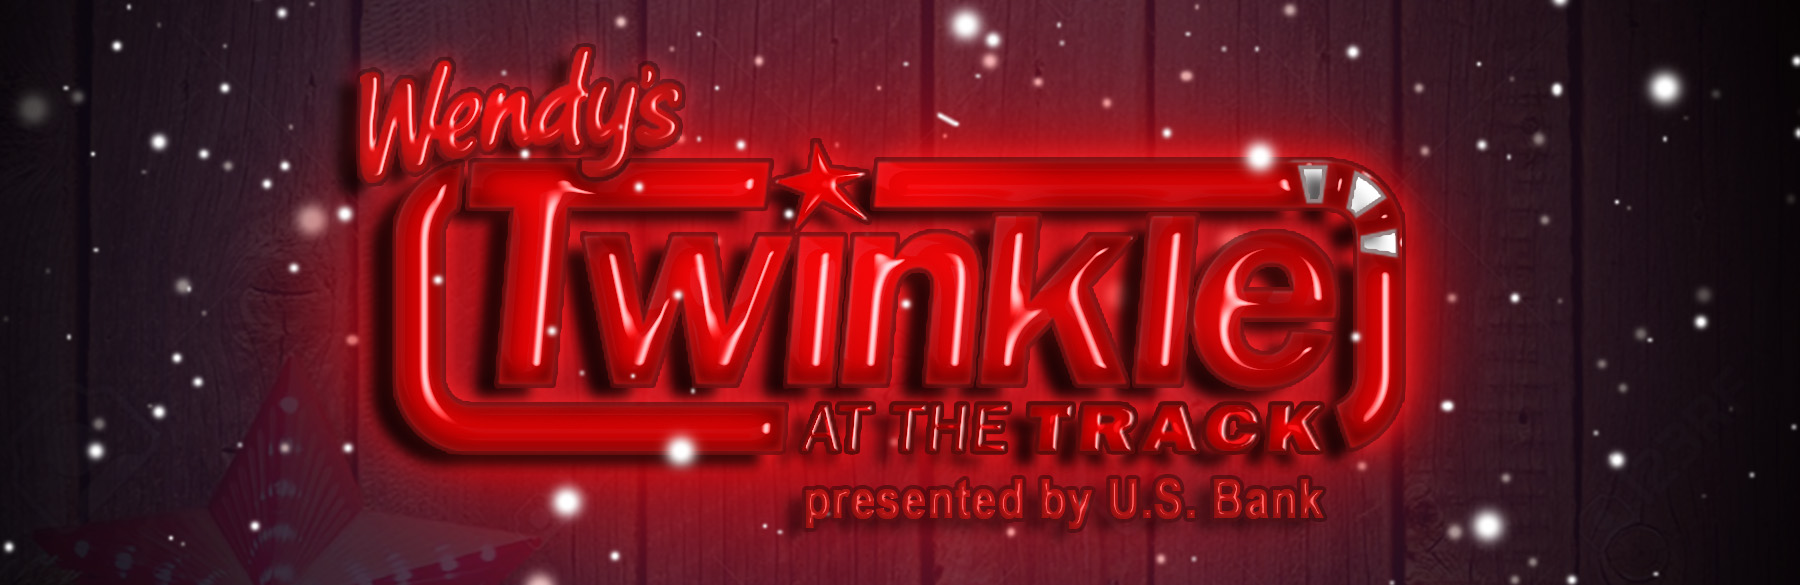 Wendy's Twinkle at the Track presented by U.S. Bank